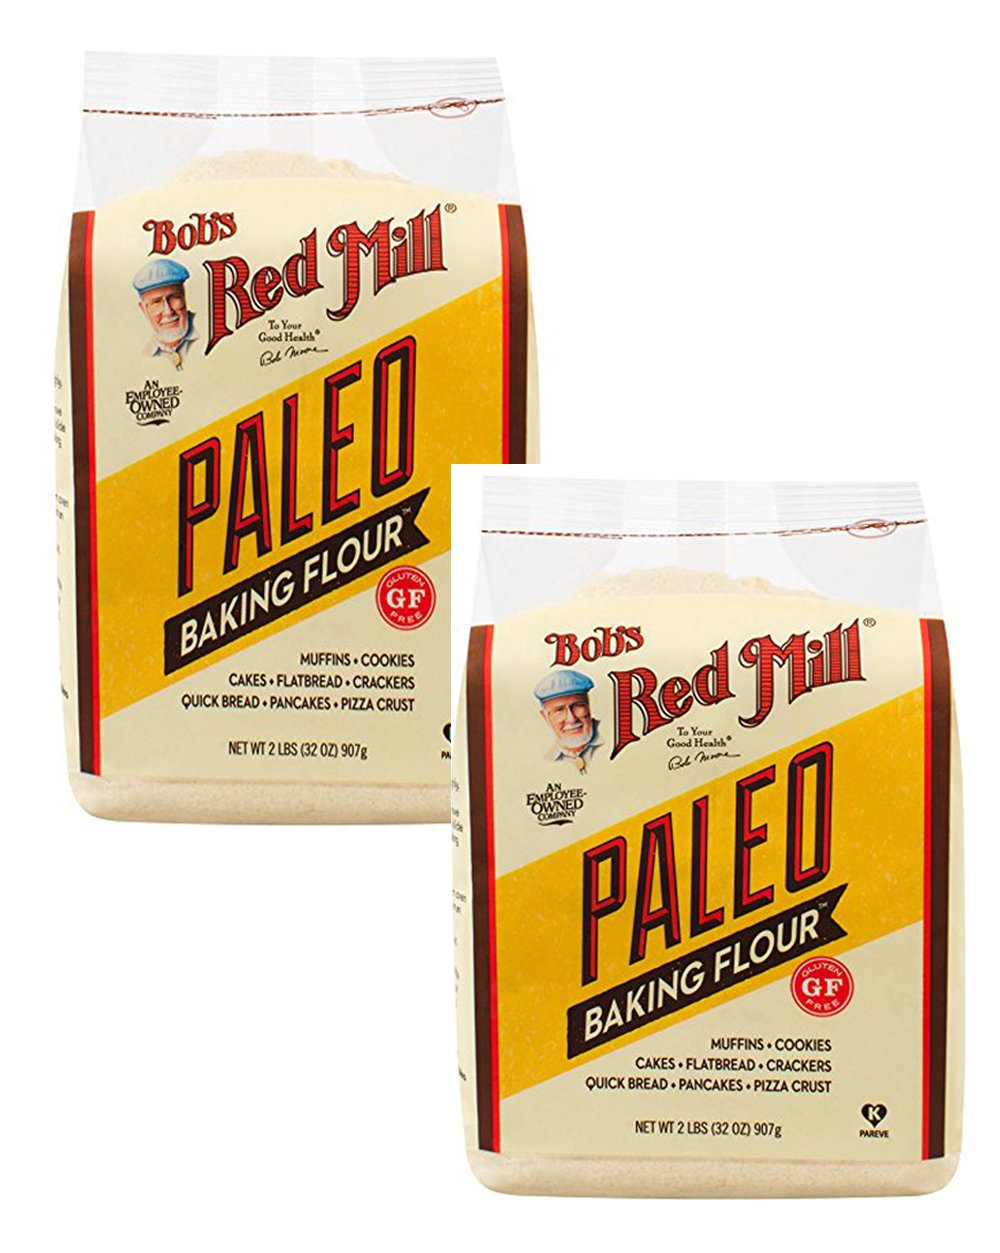 Bob's Red Mill Paleo Baking Flour, 32-ounce ~ Gluten Free ~ Grain Free ~ Nut Flours and Root Starches (2 Pack)